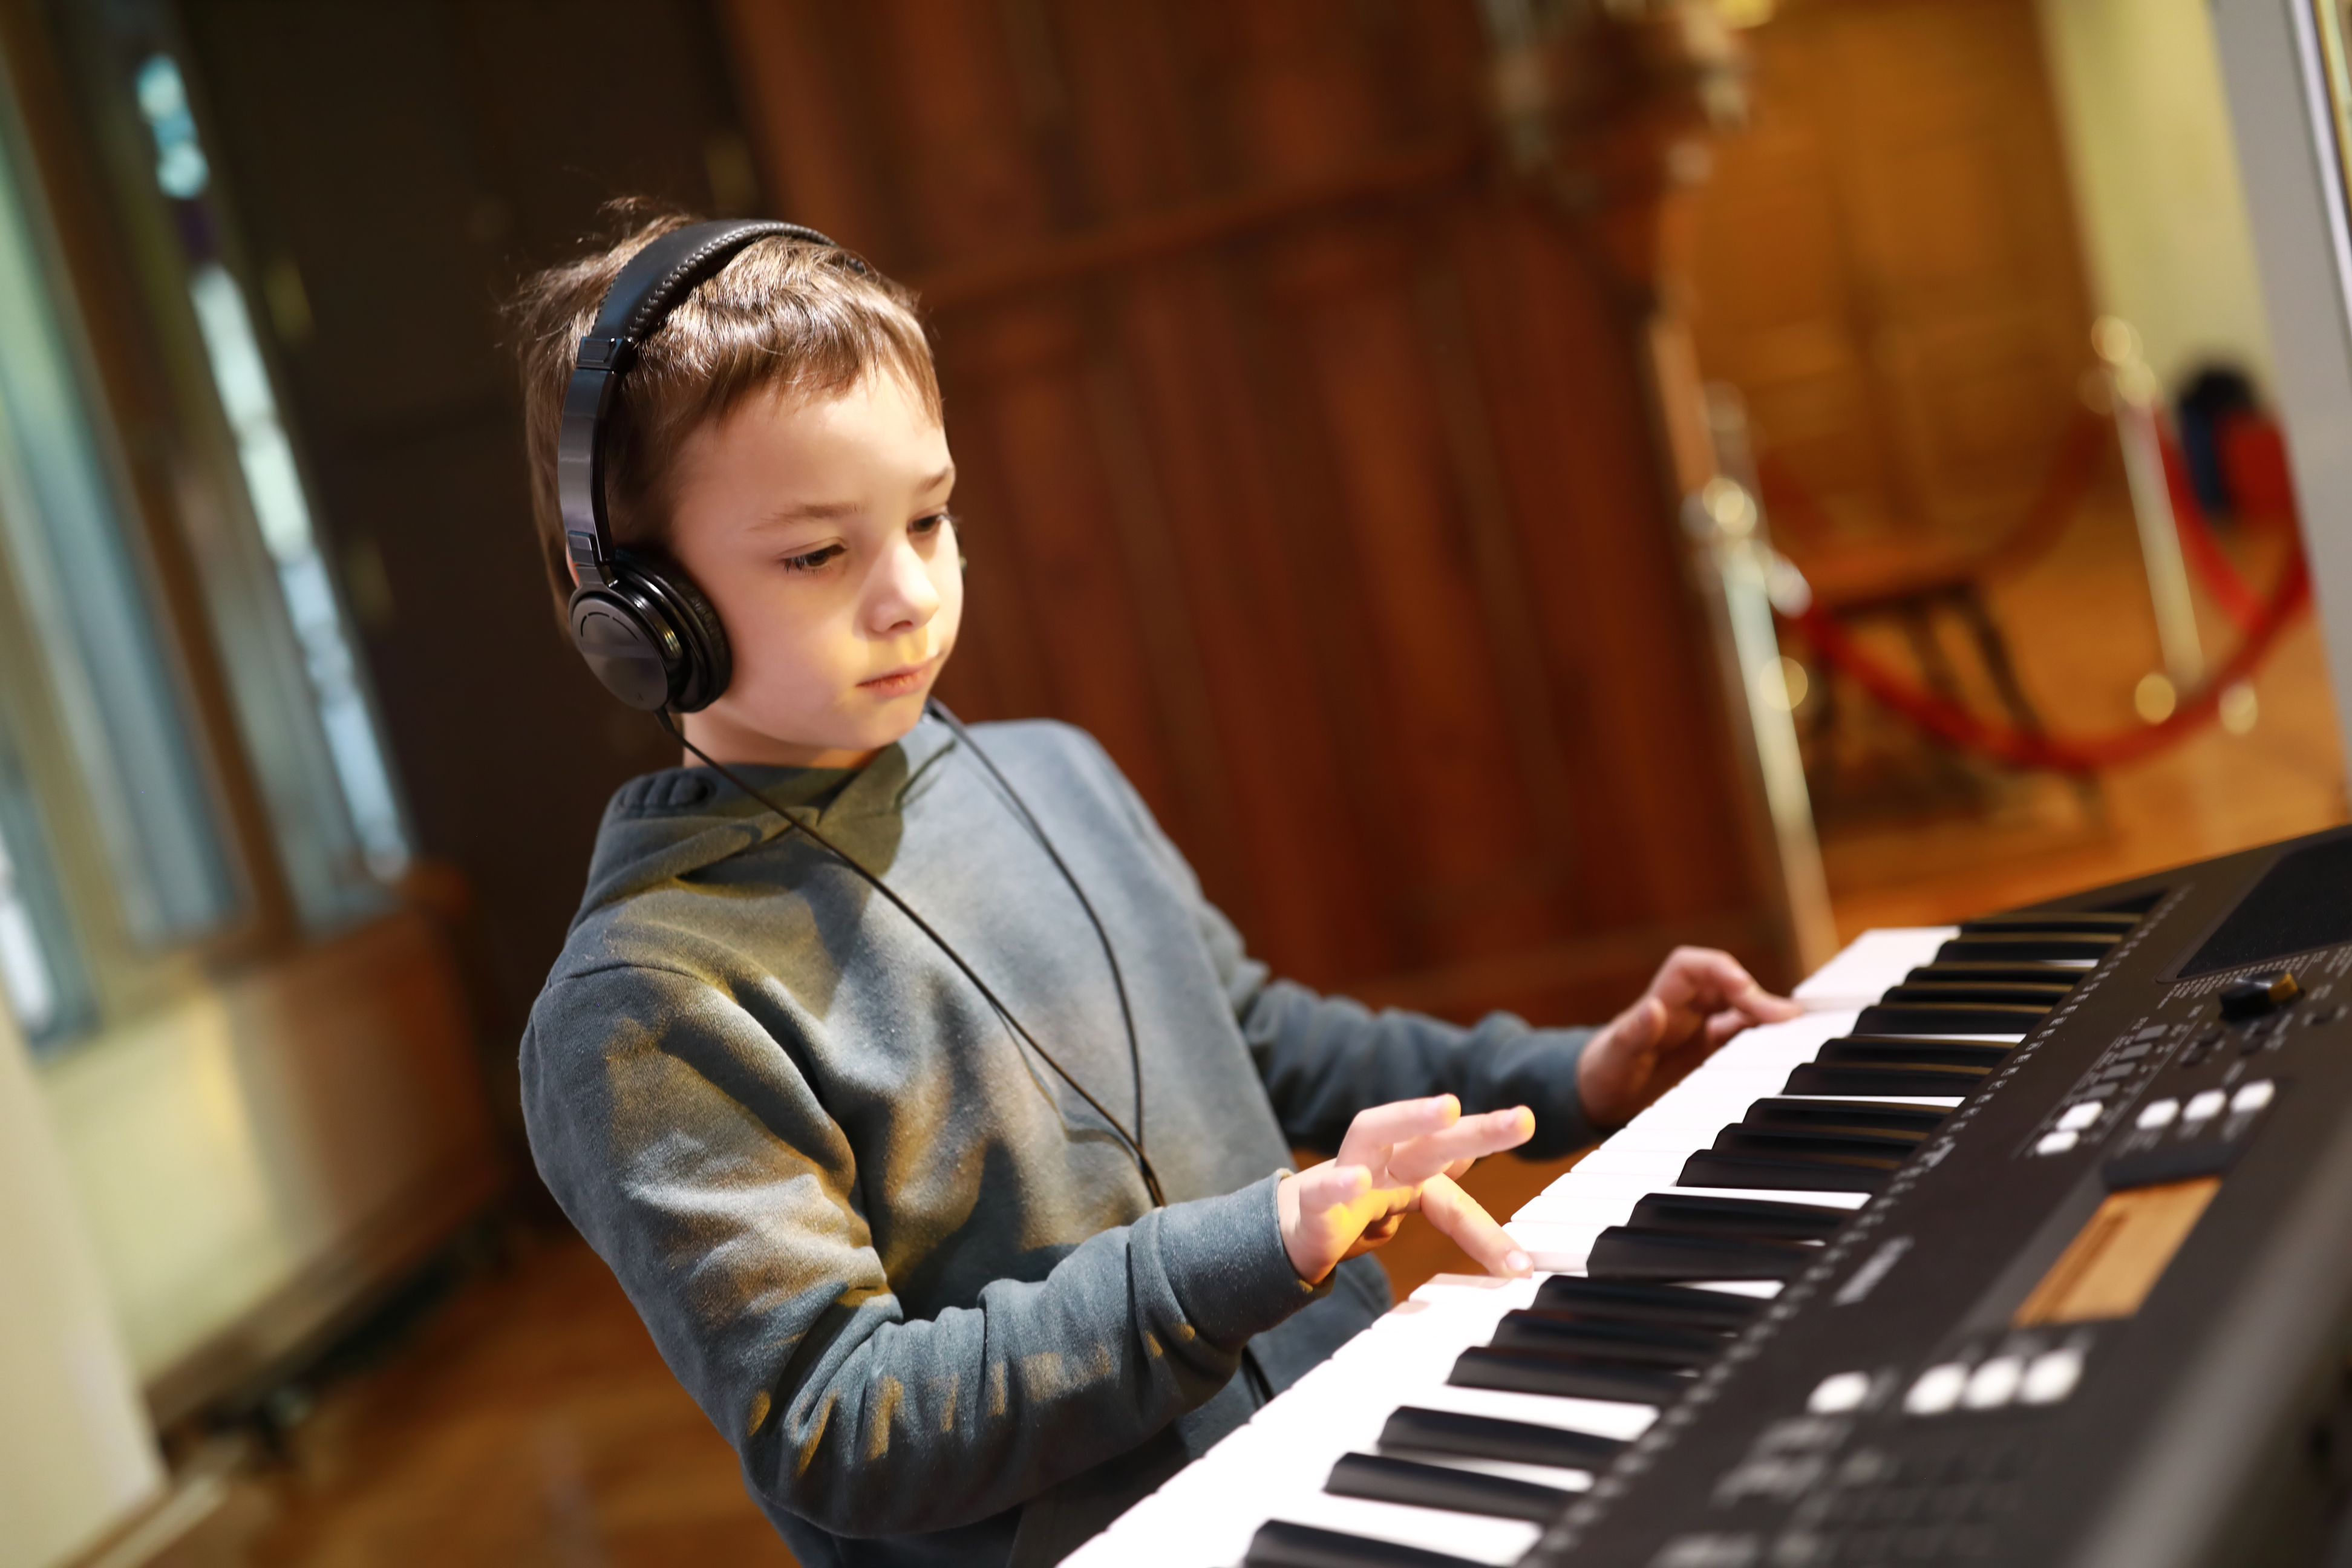 Boy taking piano keyboard lessons